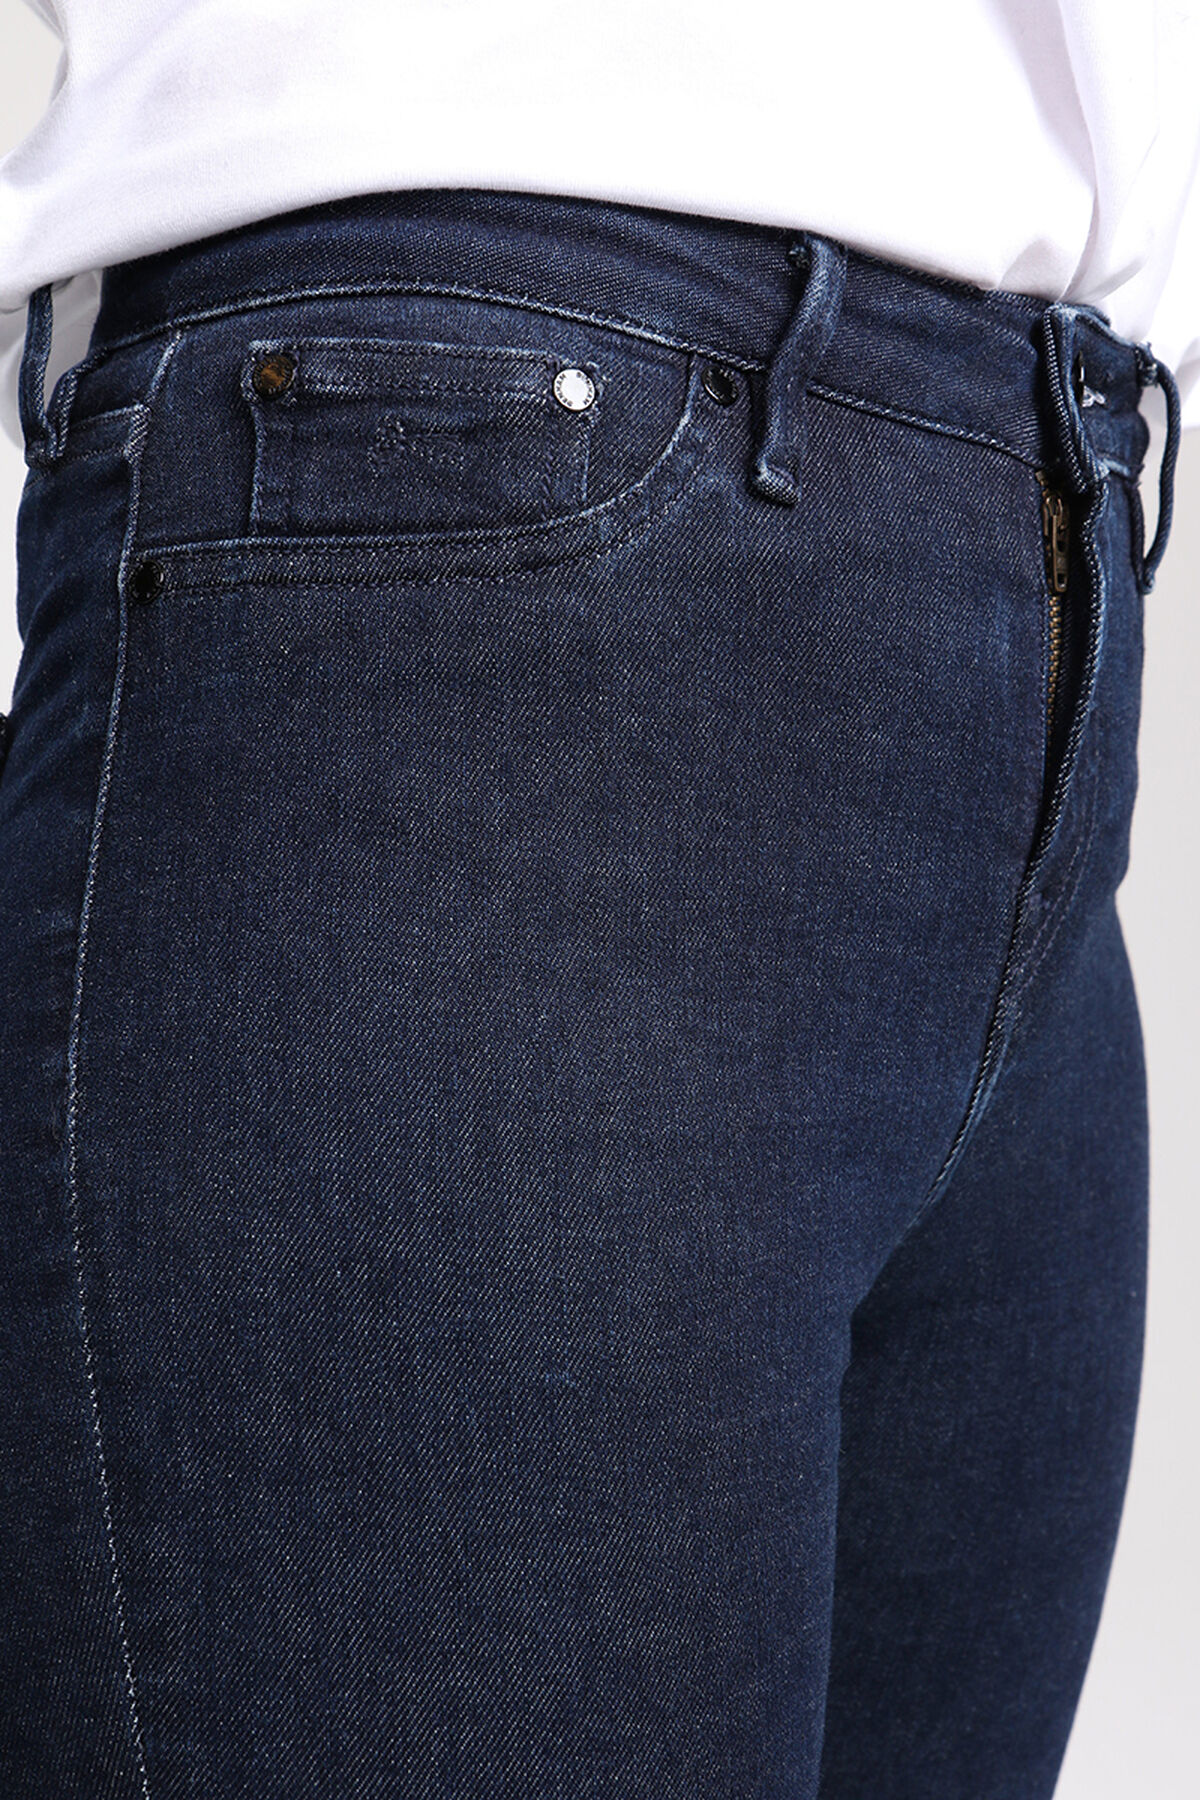 NEEDLE Indigo Dipped 18 Times Denim - High-rise, Skinny Fit